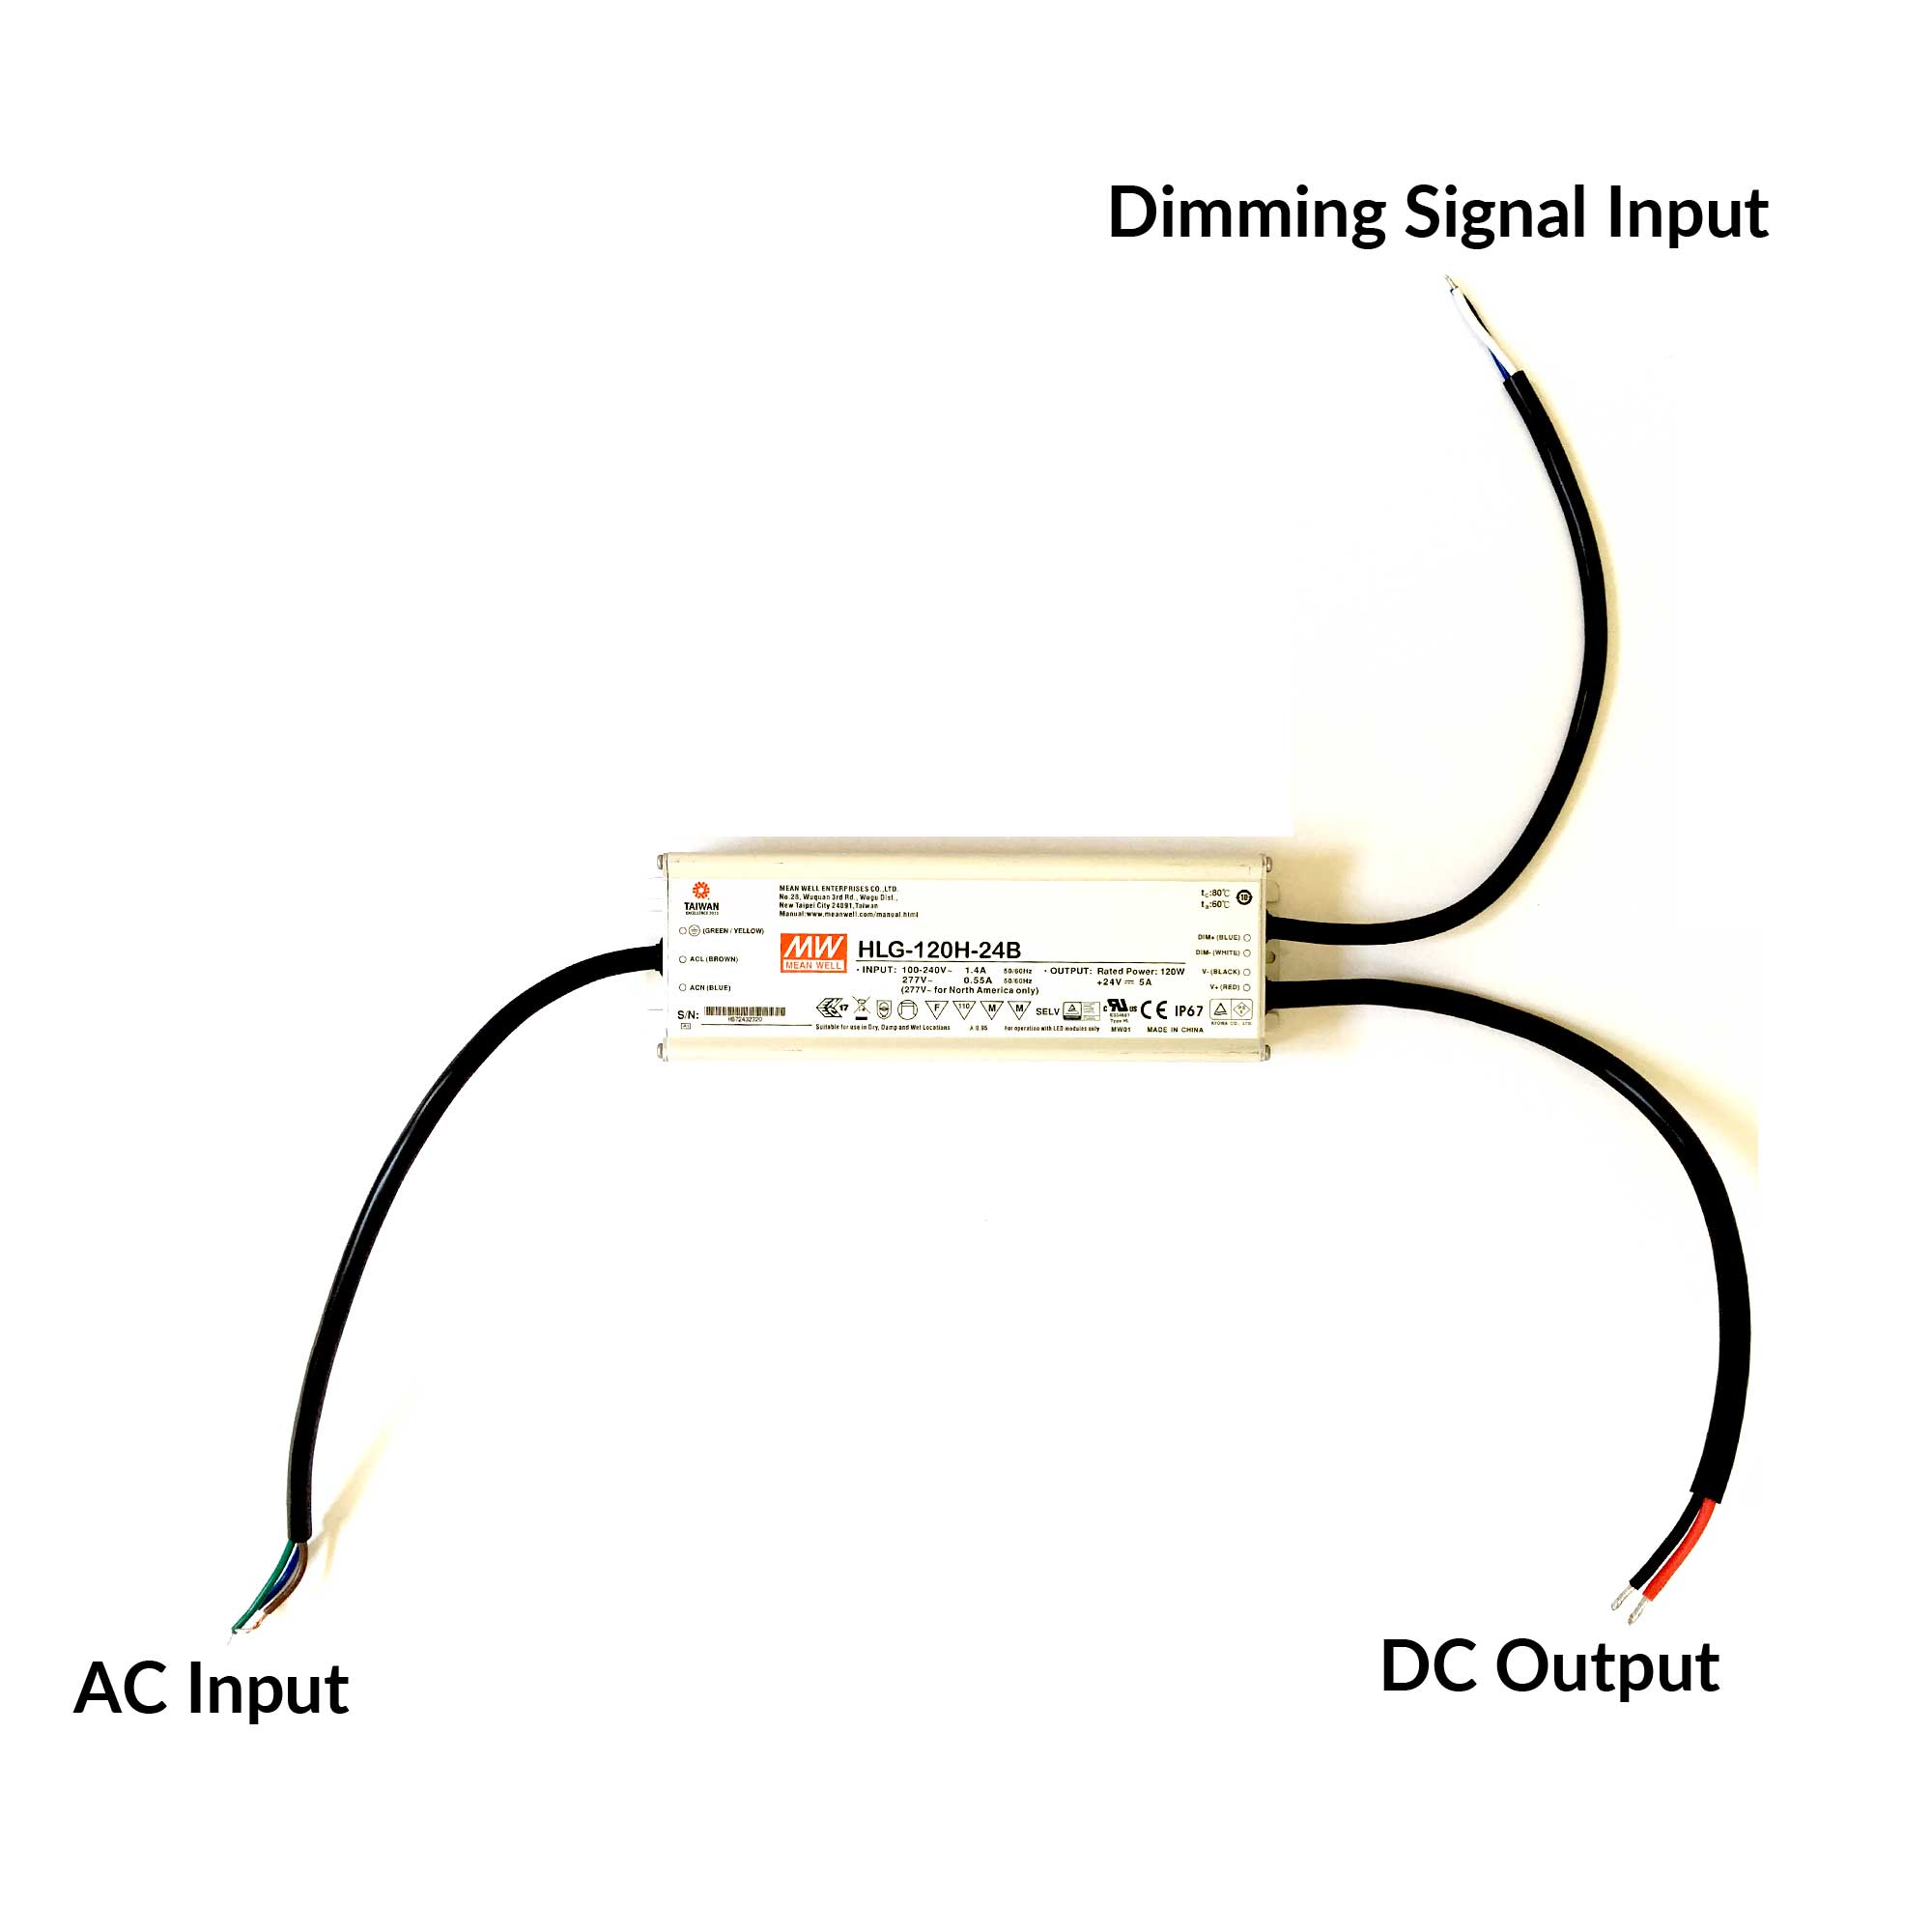 How To Connect An Led Strip A Power Supply Waveform Lighting Dc Wiring White Line Connection Plug Both Types Can Be Made Work With But The Methodology Will Different So Sure Determine This Prior Moving Forward